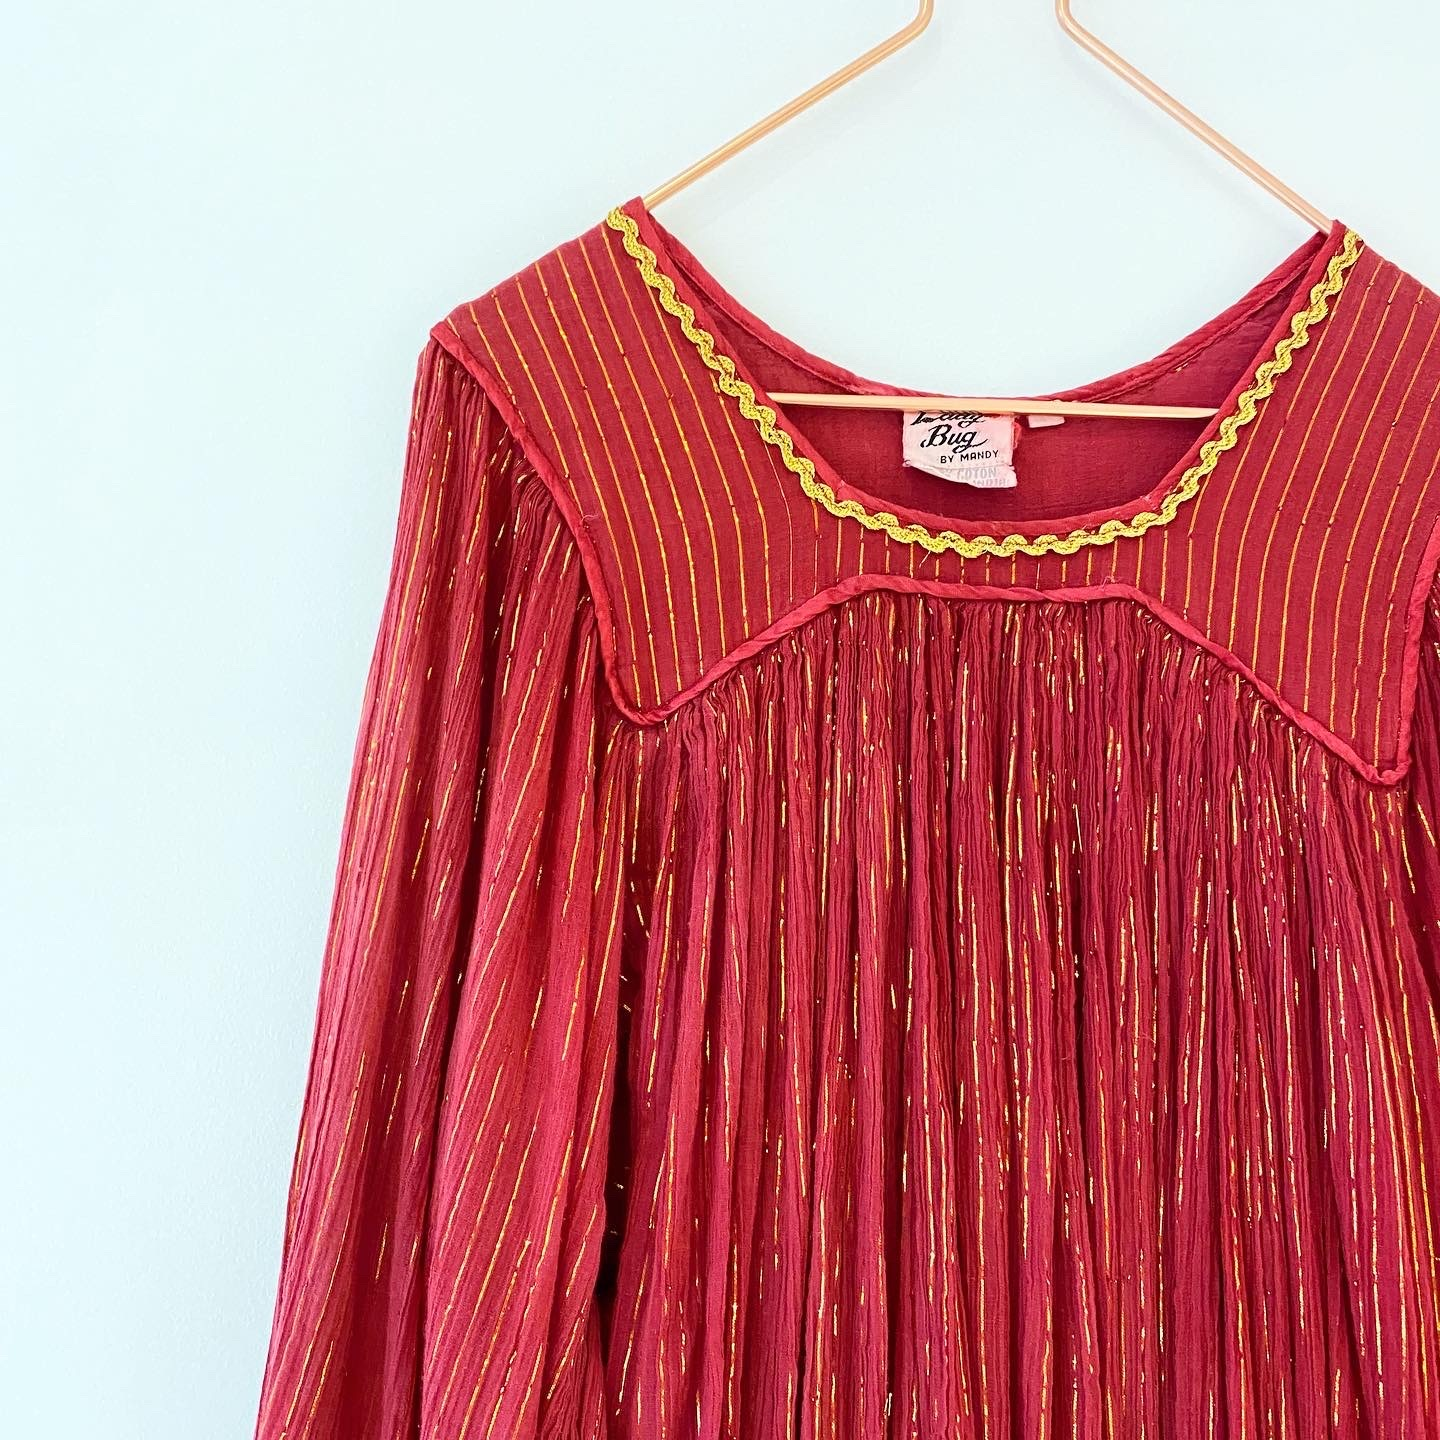 ◼︎80s vintage India cotton gold thread dress from India◼︎